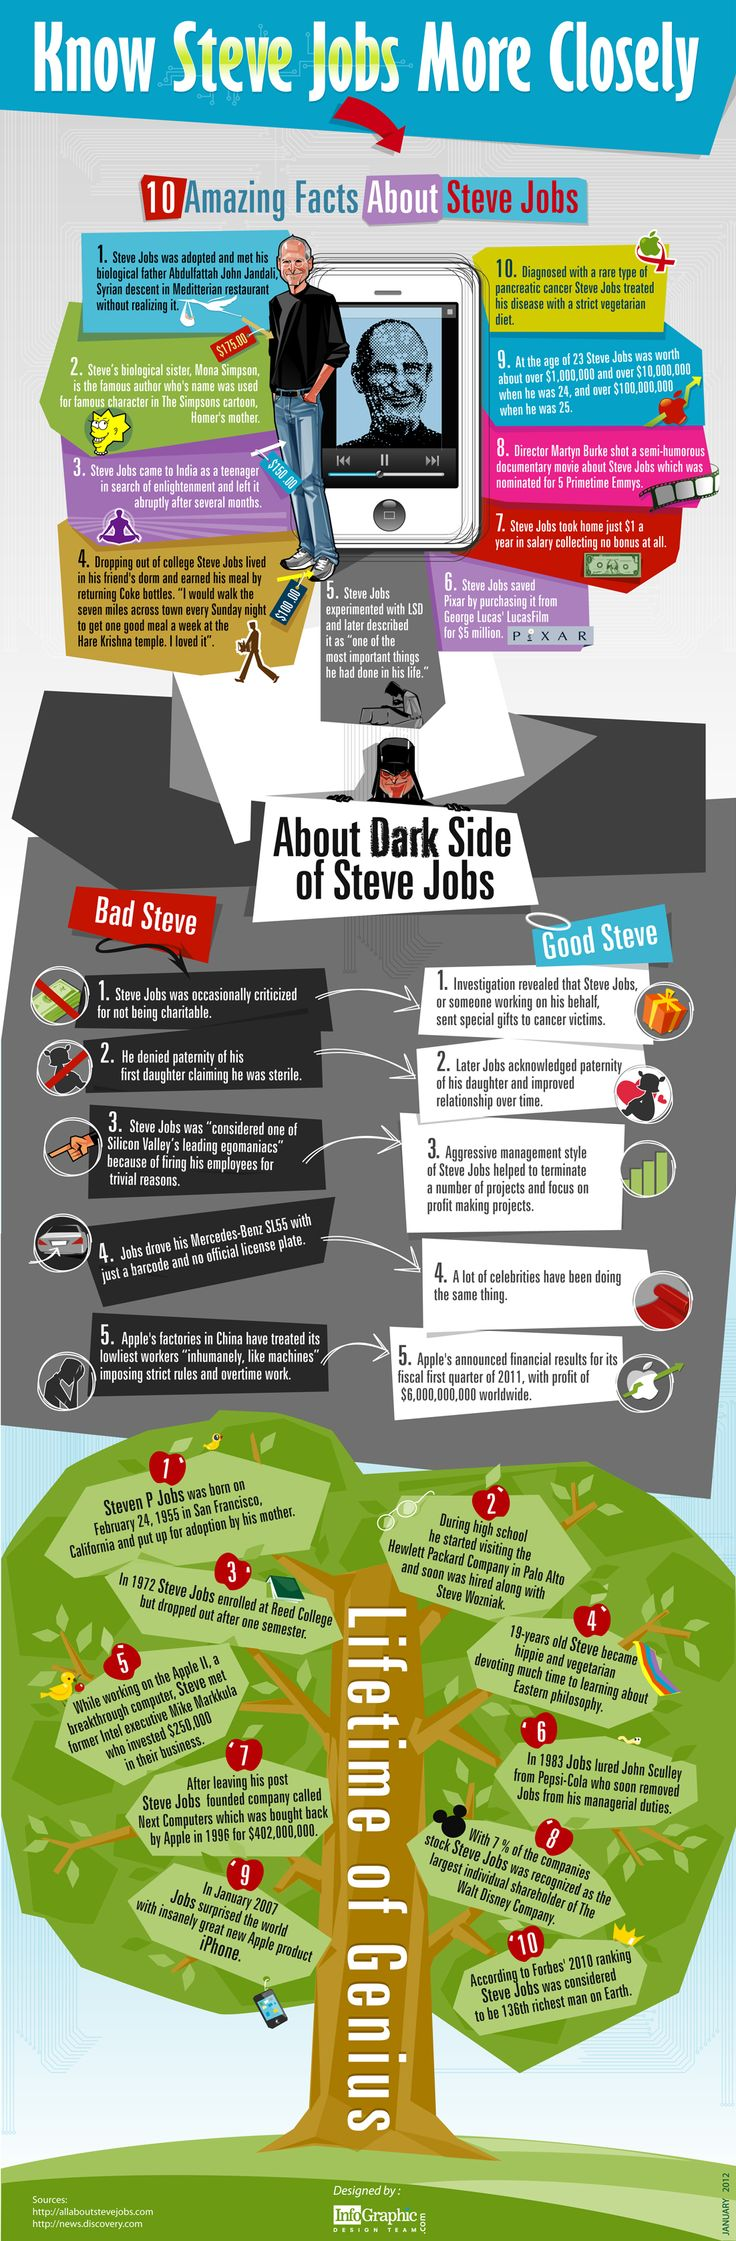 10 amazing things about Steve Jobs. #infografia #infographic #apple